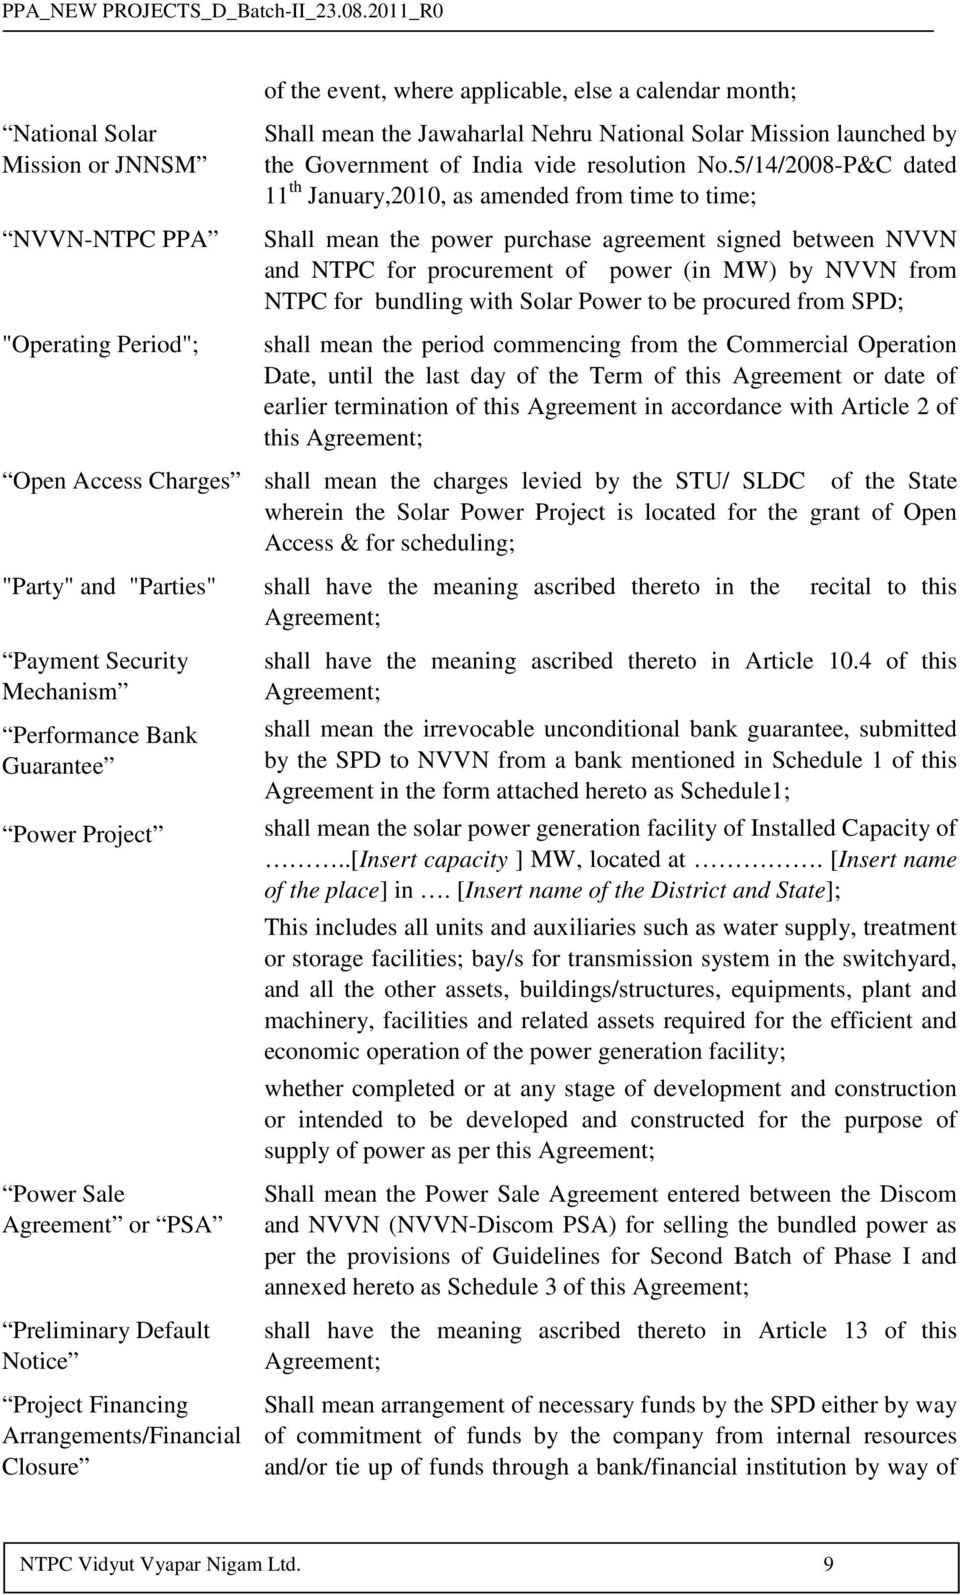 Draft Standard Power Purchase Agreement For Procurement Of Mw